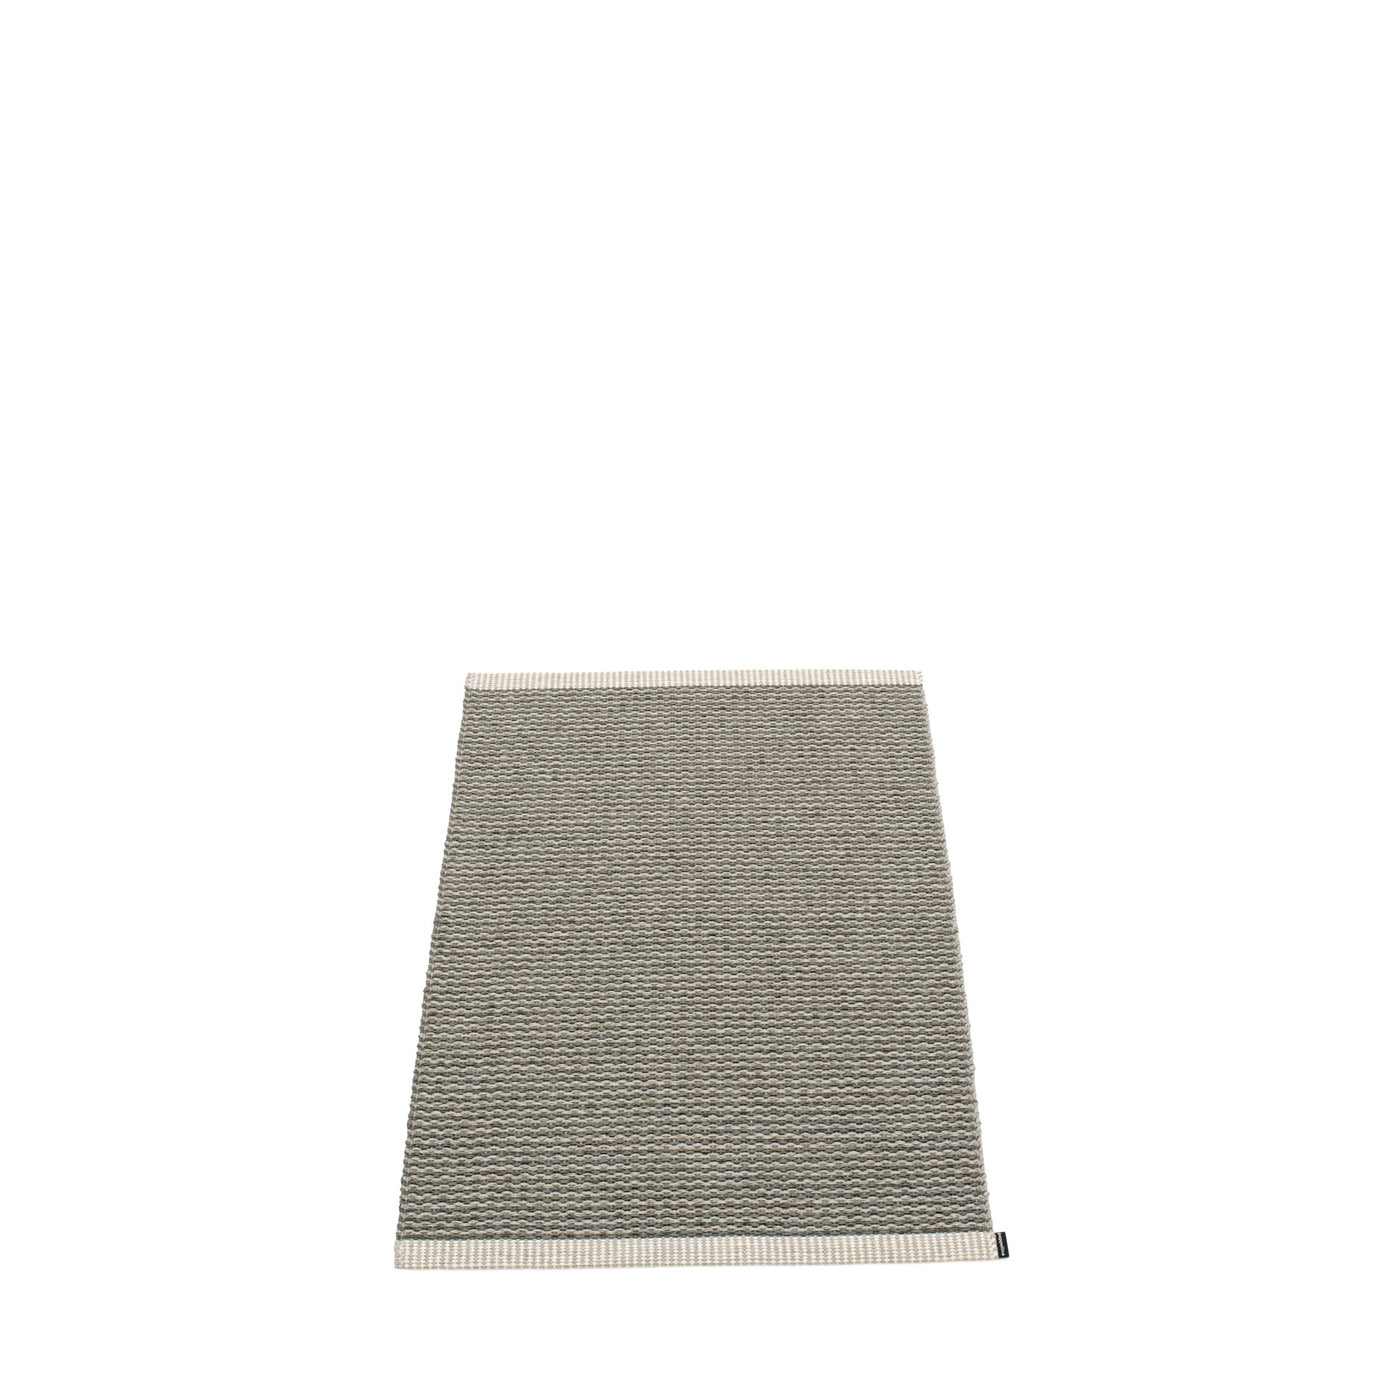 Pappelina Mono Rug Charcoal / Warm Grey